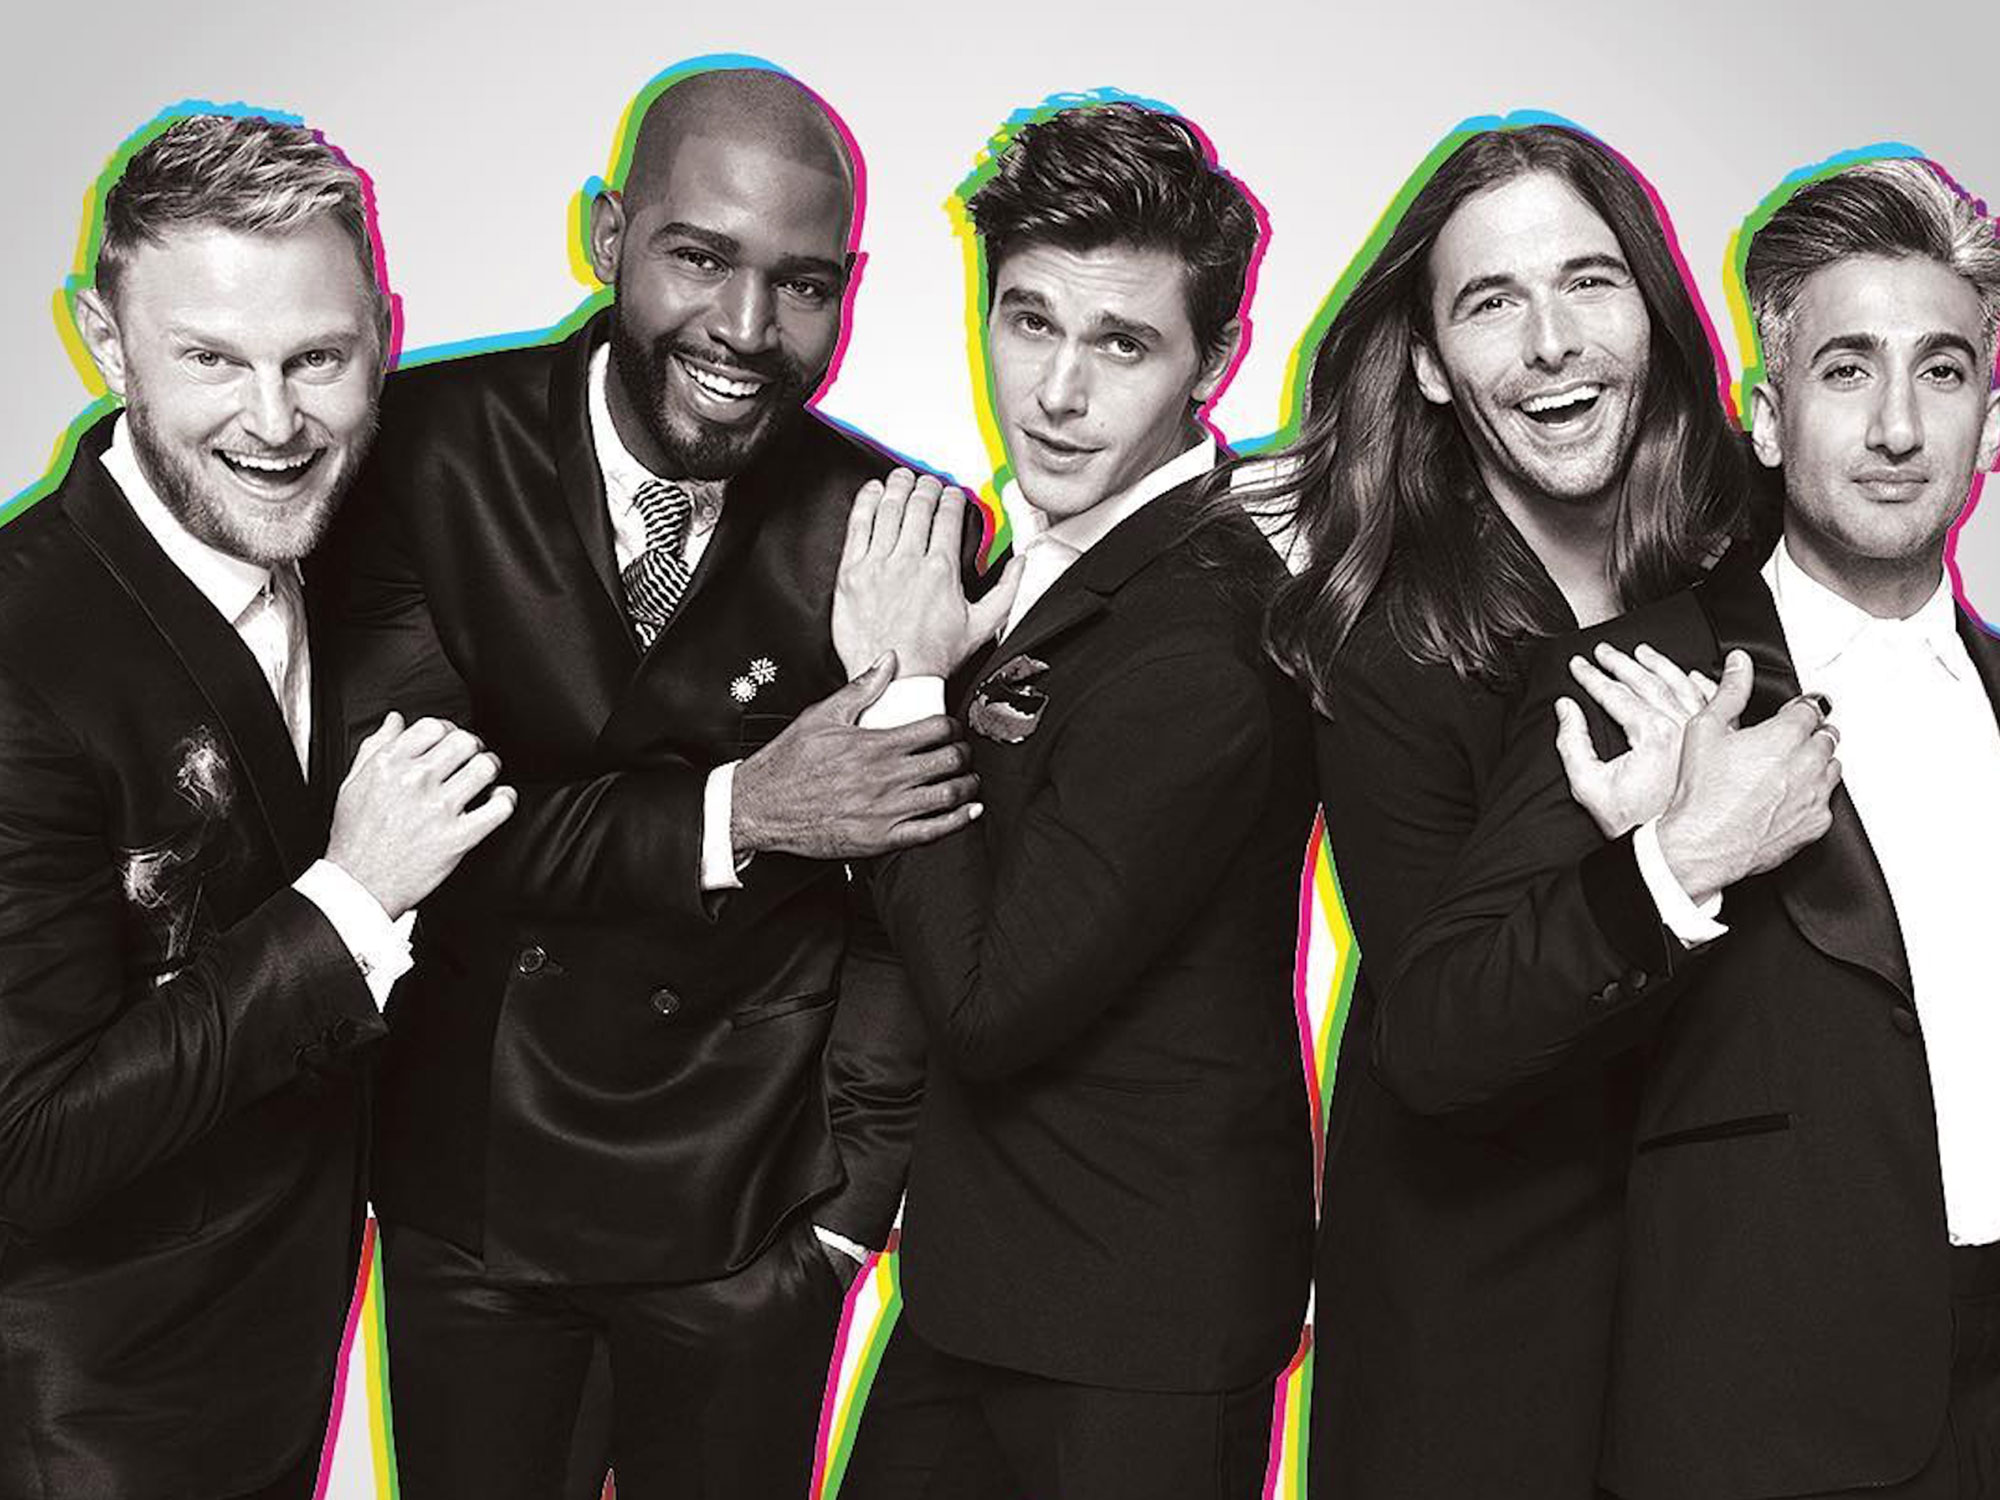 The Food On 'Queer Eye' Is Basically All Breakfast